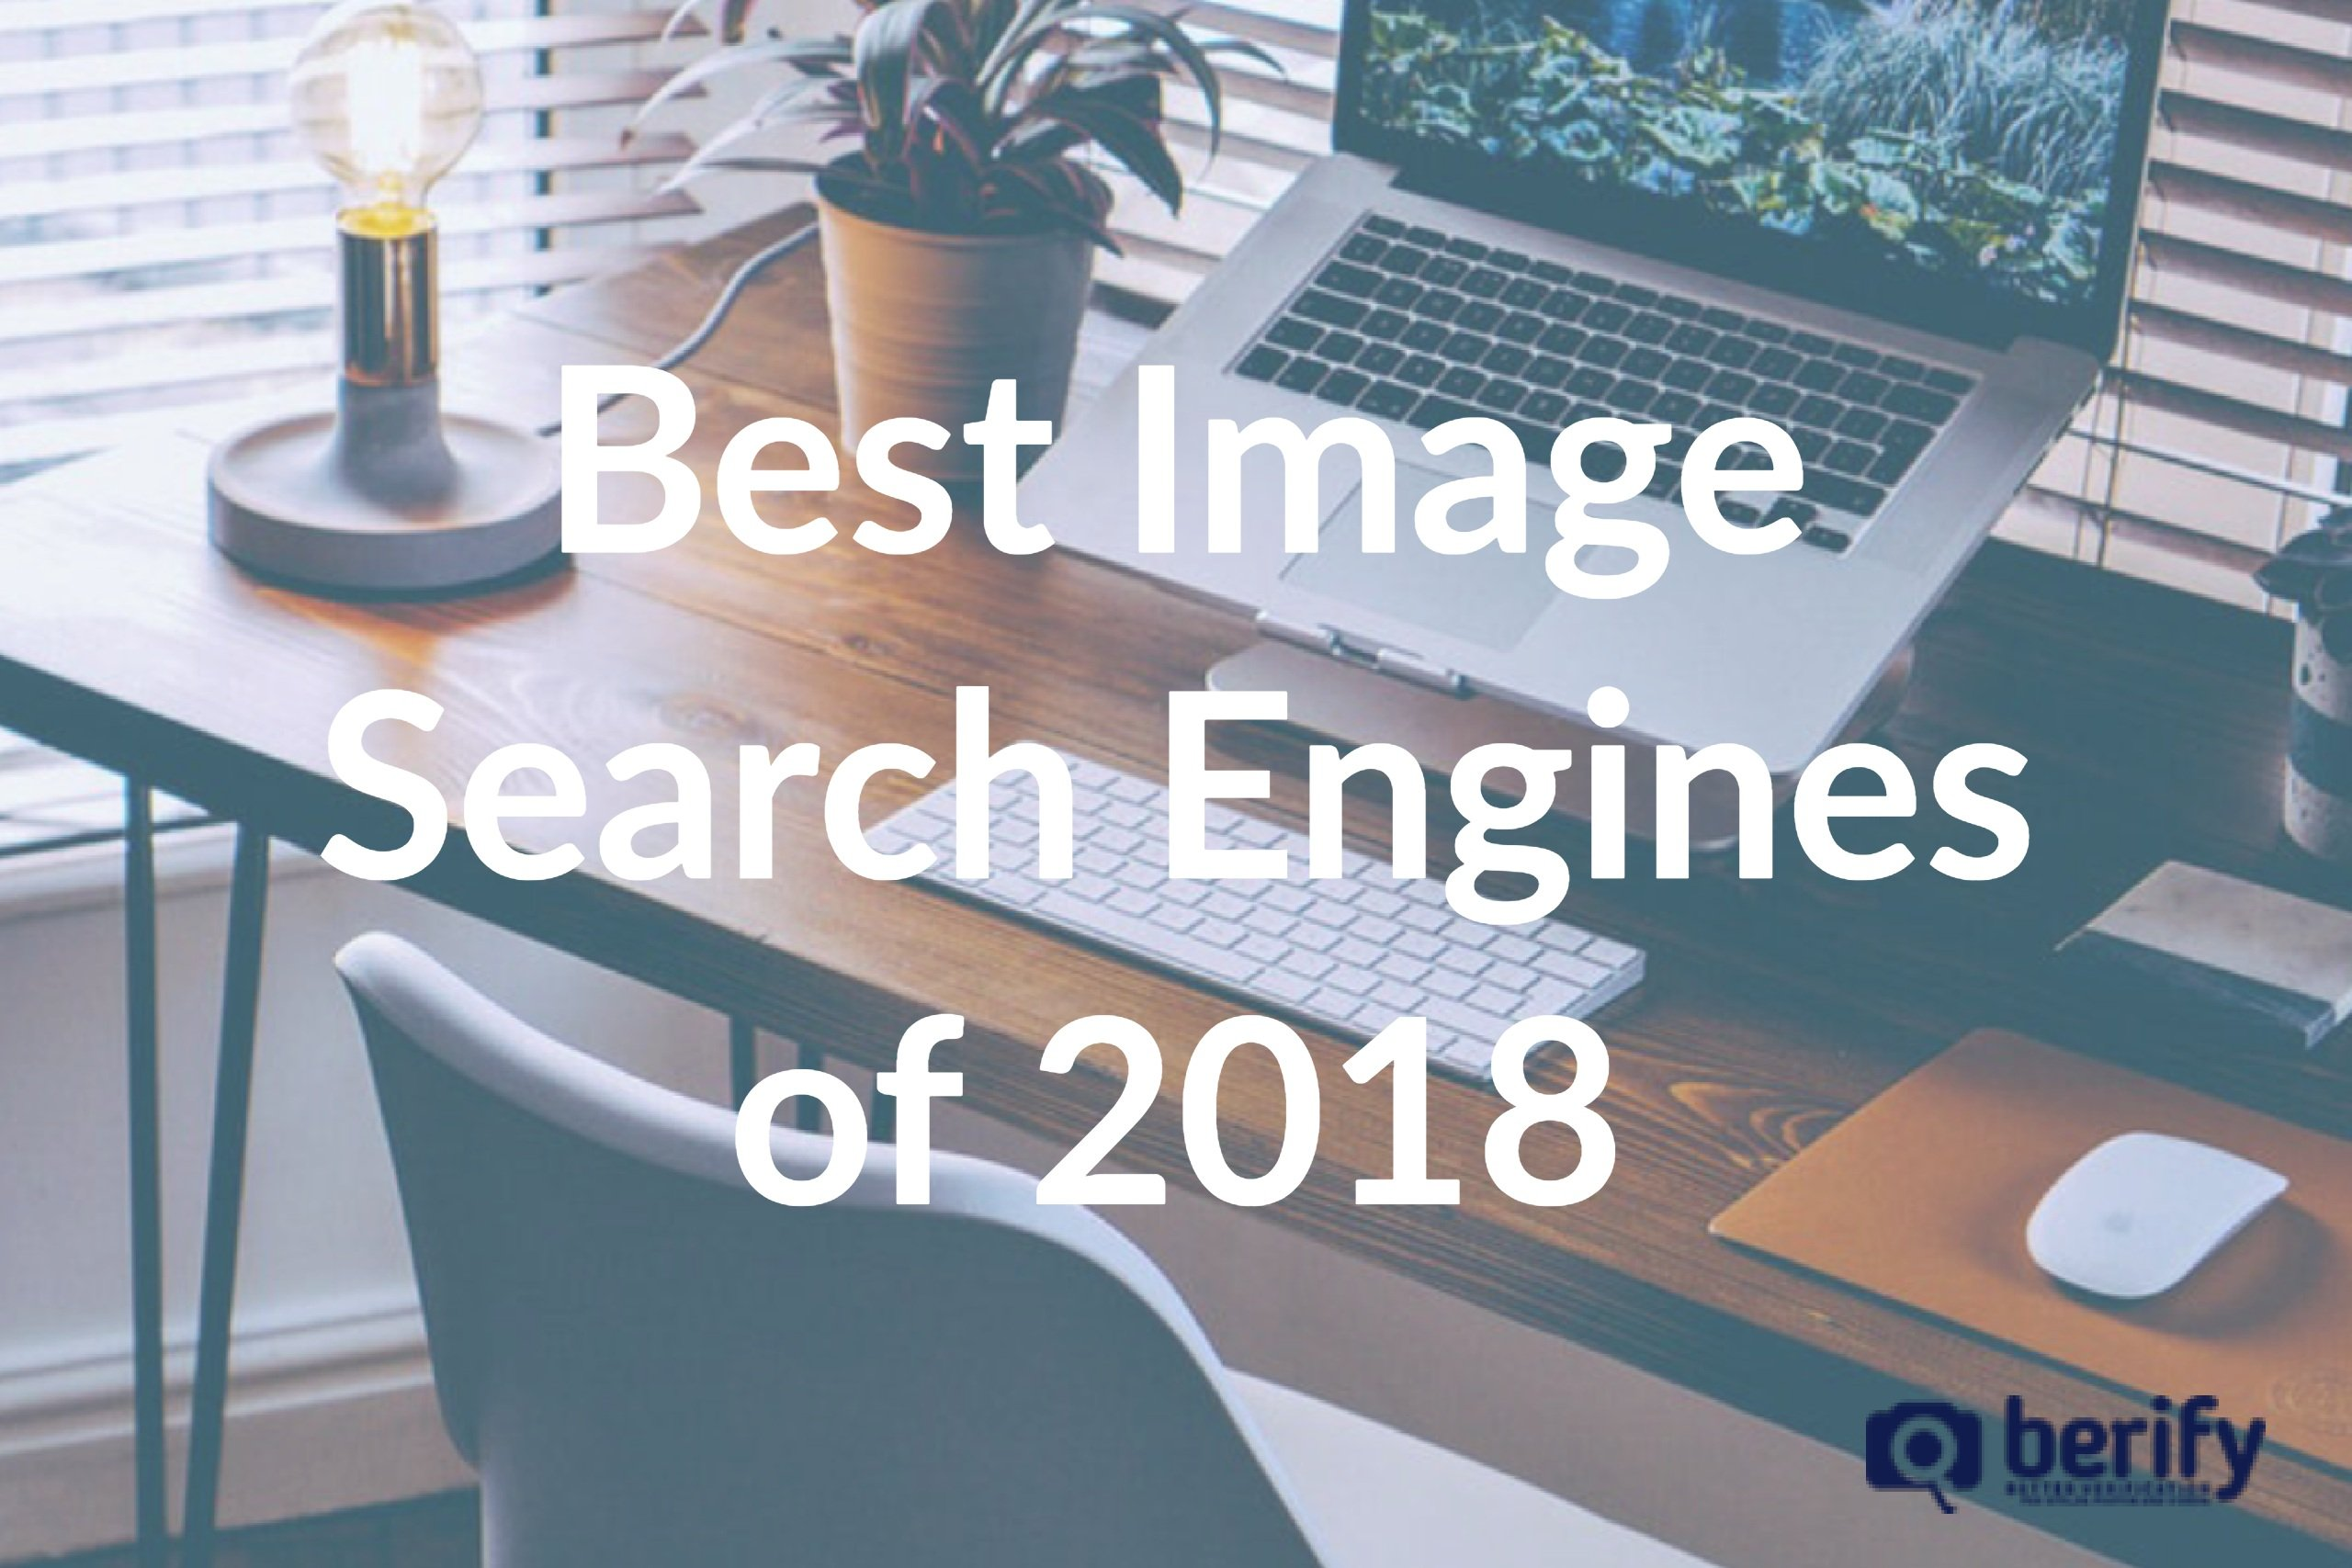 Reverse Image Search: The Best Image Search Engines of 2018